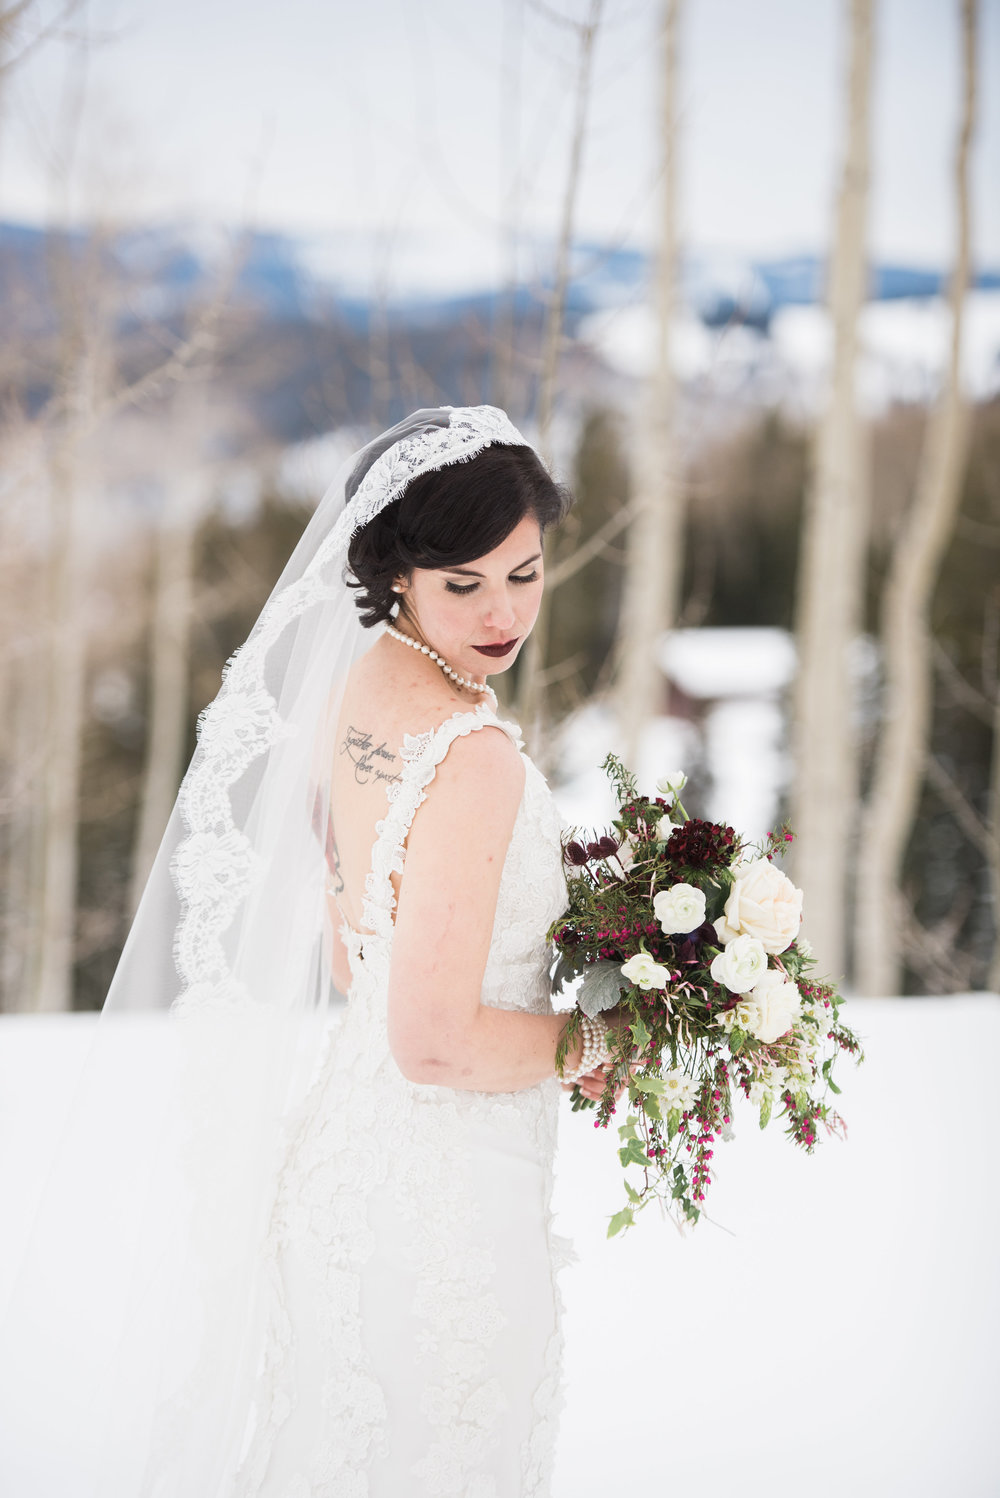 Beaver Creek Mountain wedding | Robert Bullock Bride gown from Little White Dress Bridal Shop in Denver | Ali & Garrett Wedding Photographers